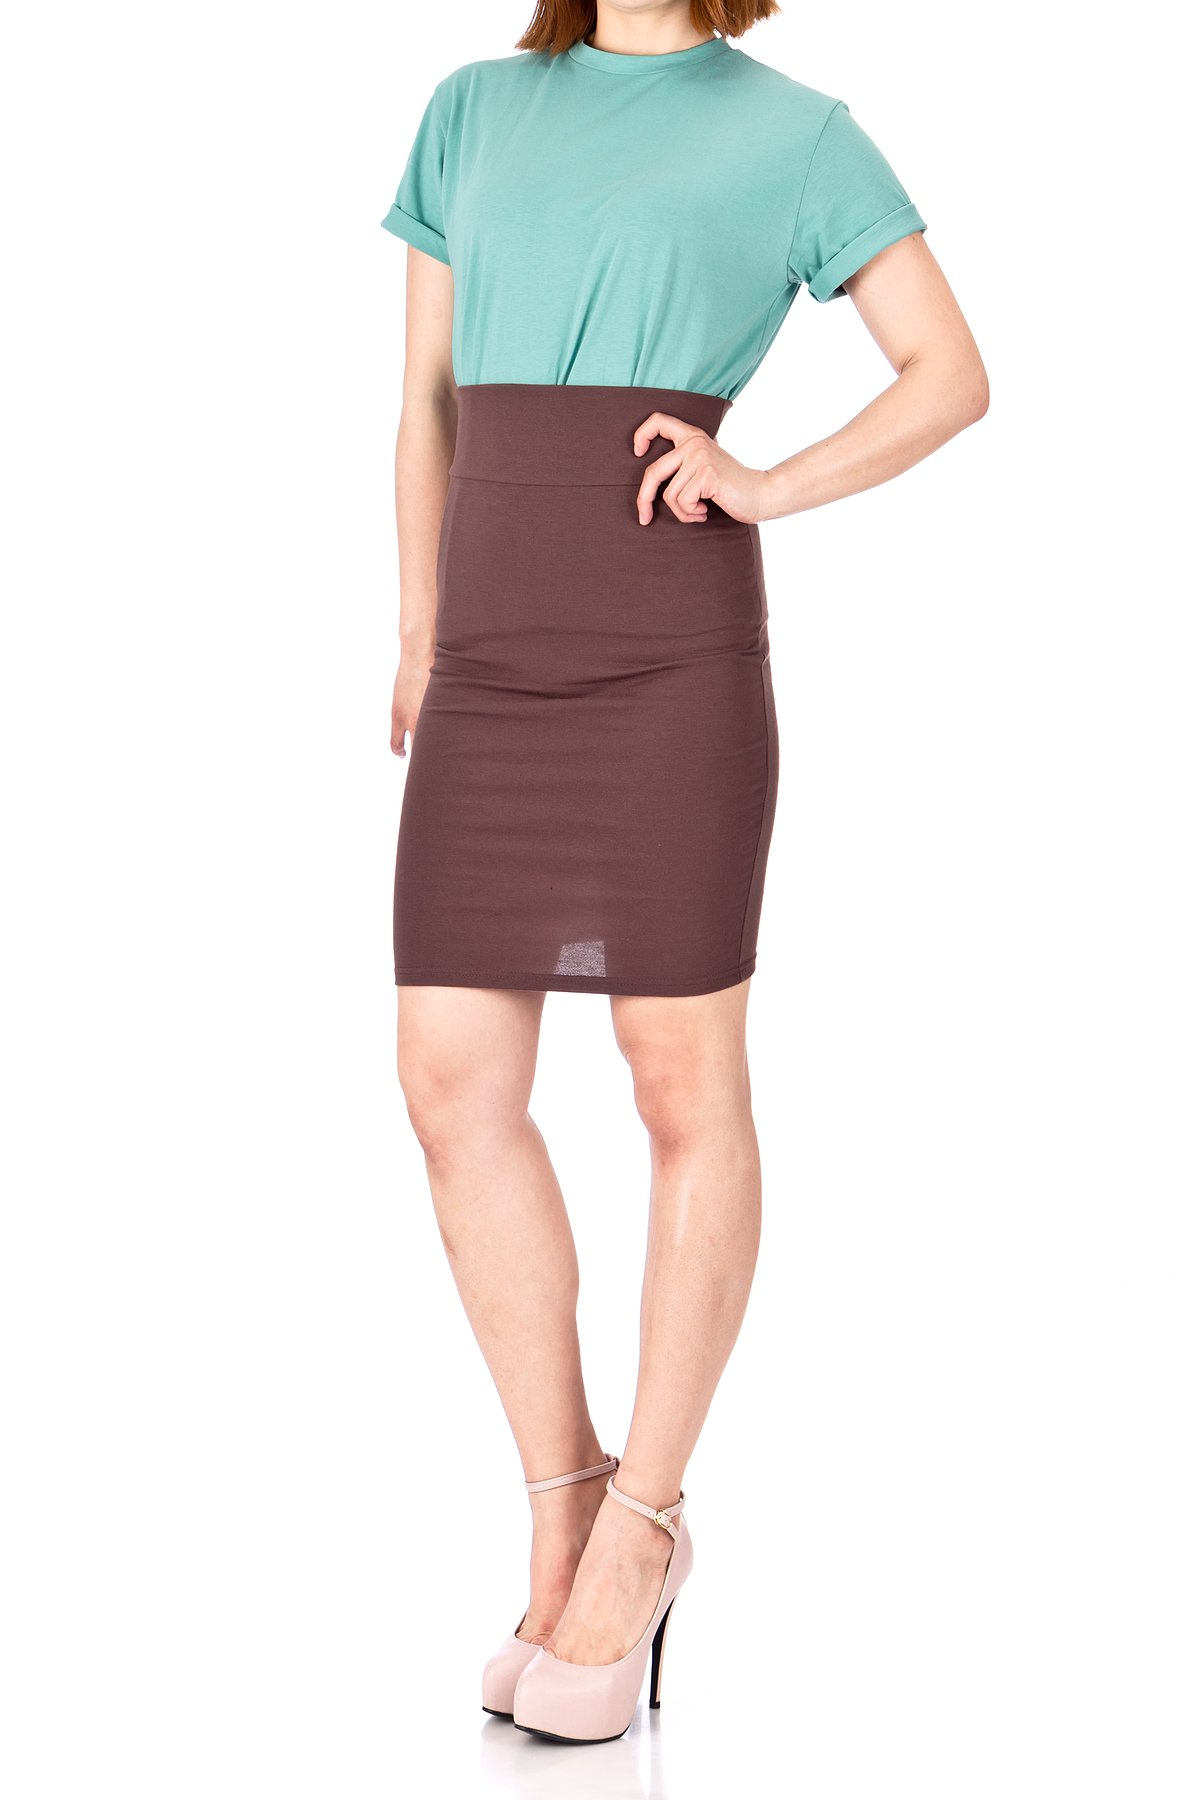 Every Occasion Stretch Pull on Wide High Waist Bodycon Pencil Knee Length Midi Skirt Brown 02